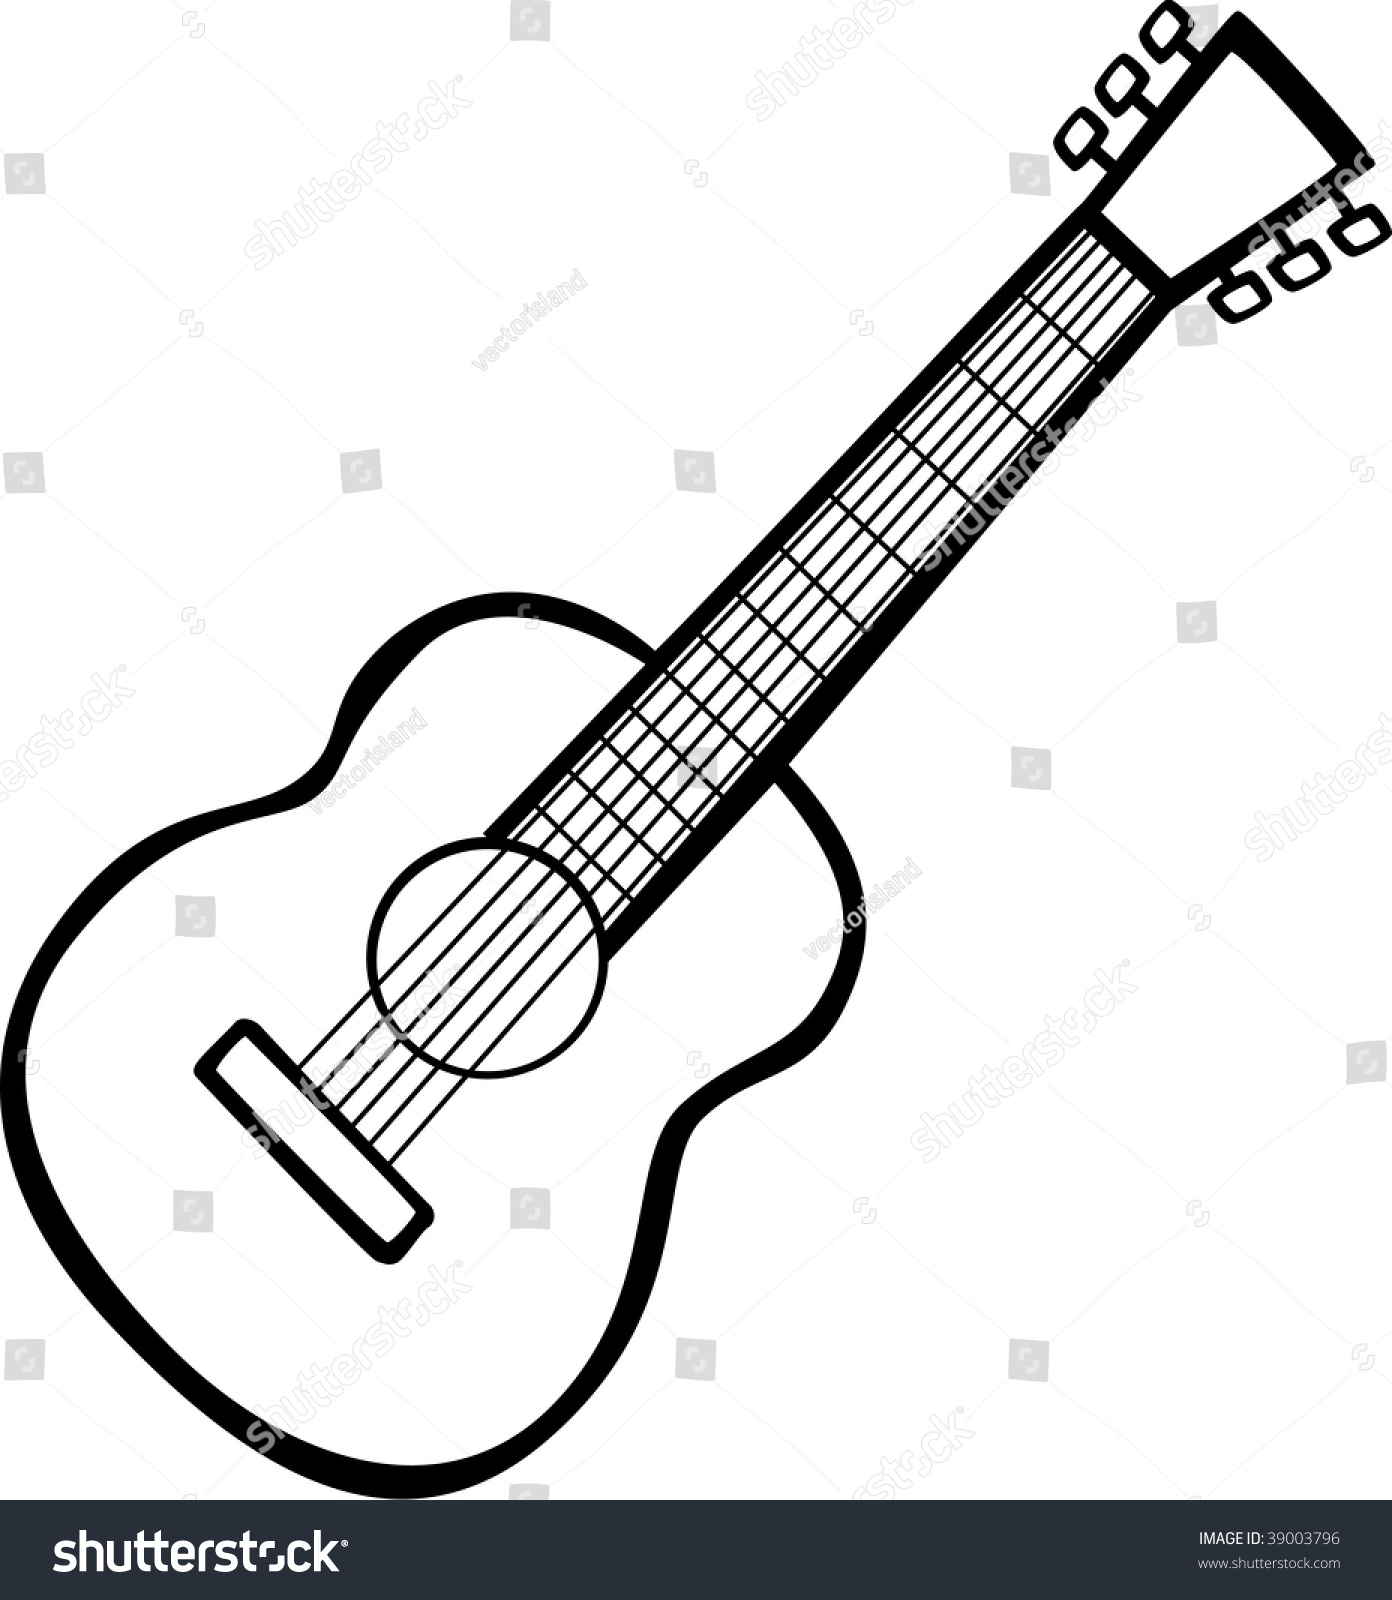 Classical guitar stock photo 39003796 shutterstock for Classic house bass lines